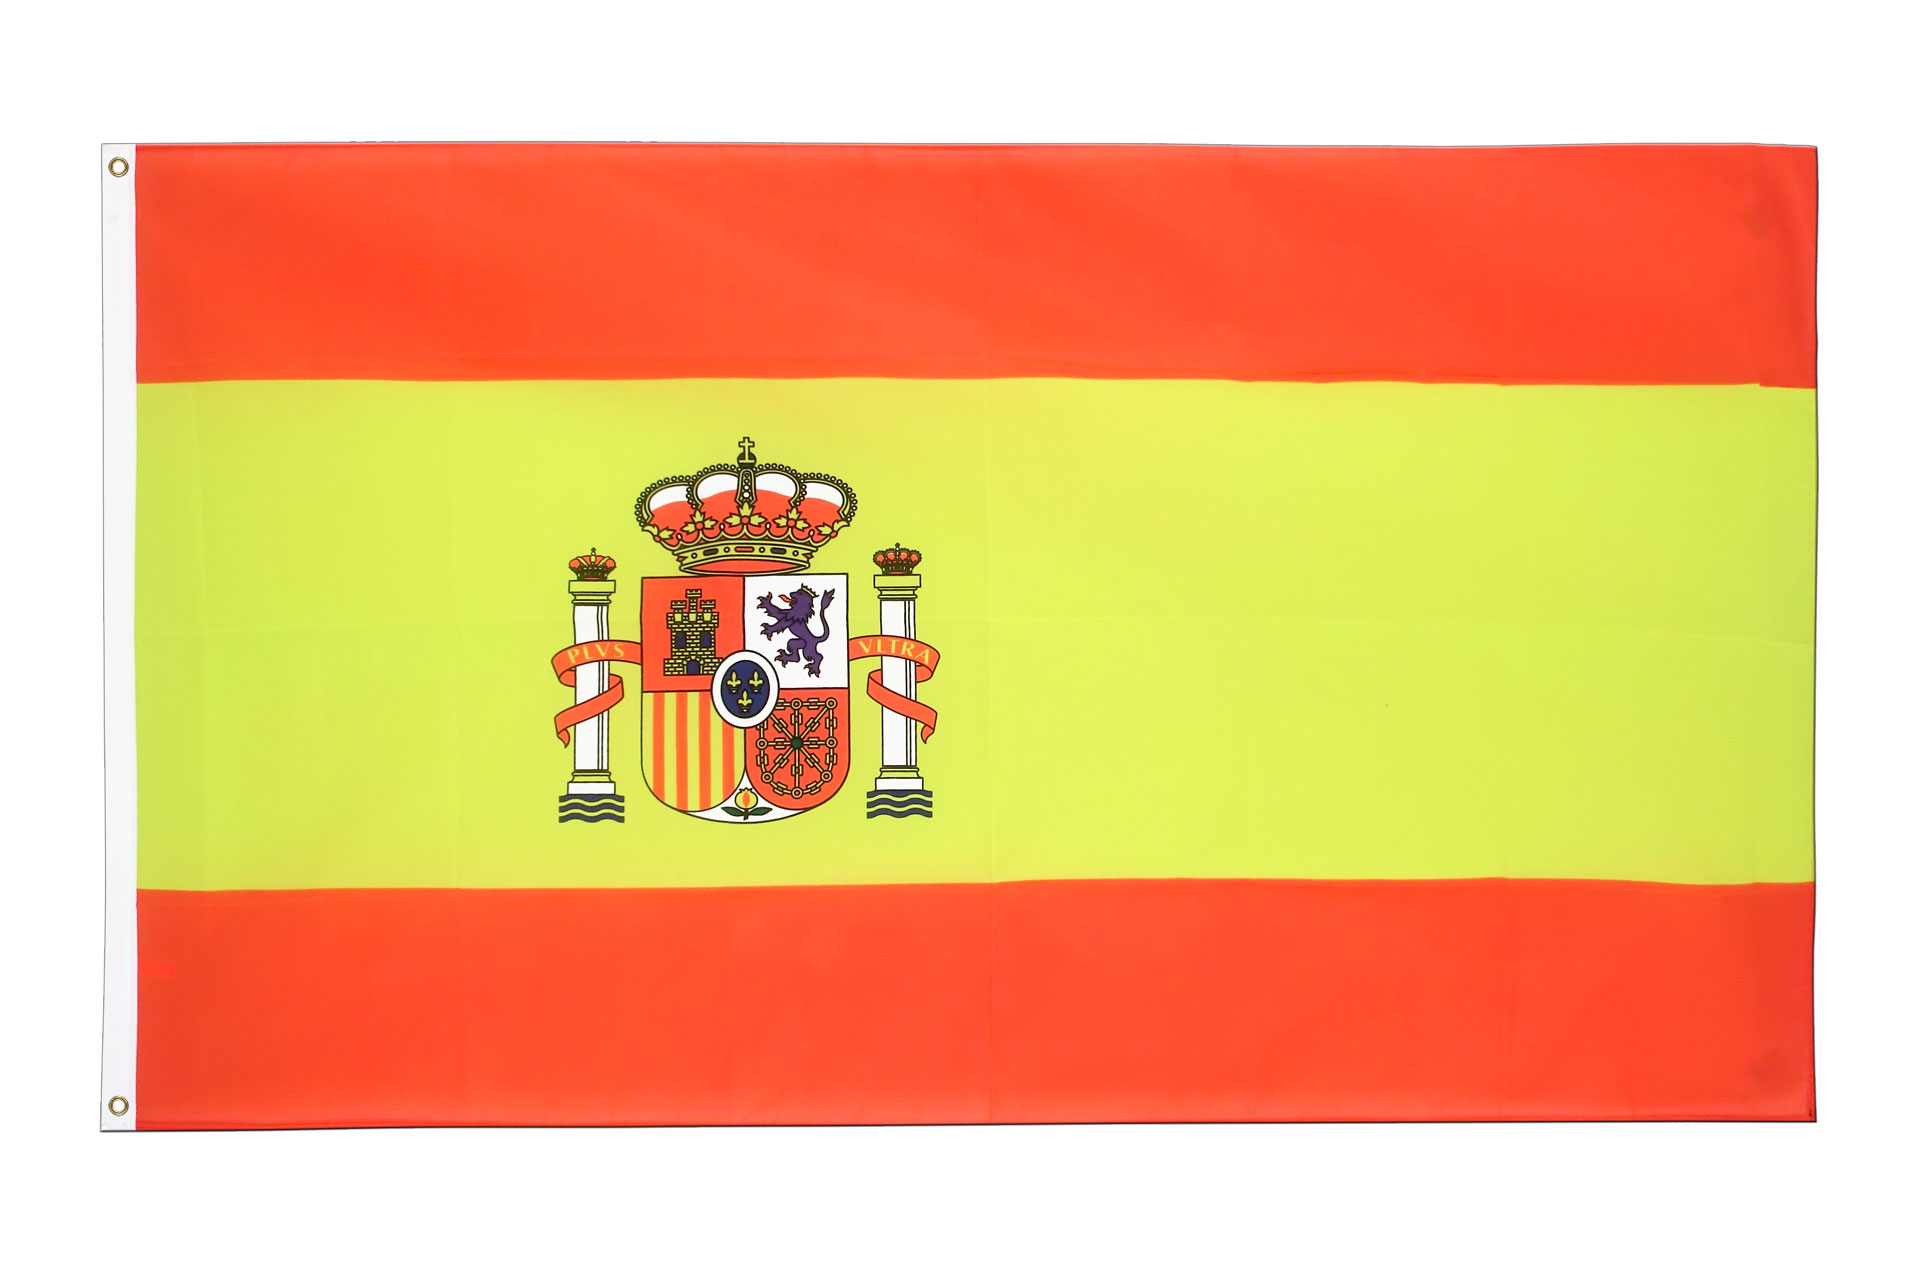 Buy Spain with crest Flag - 3x5 ft (90x150 cm) - Royal-Flags: royal-flags.co.uk/spain-with-crest-flag-2017.html